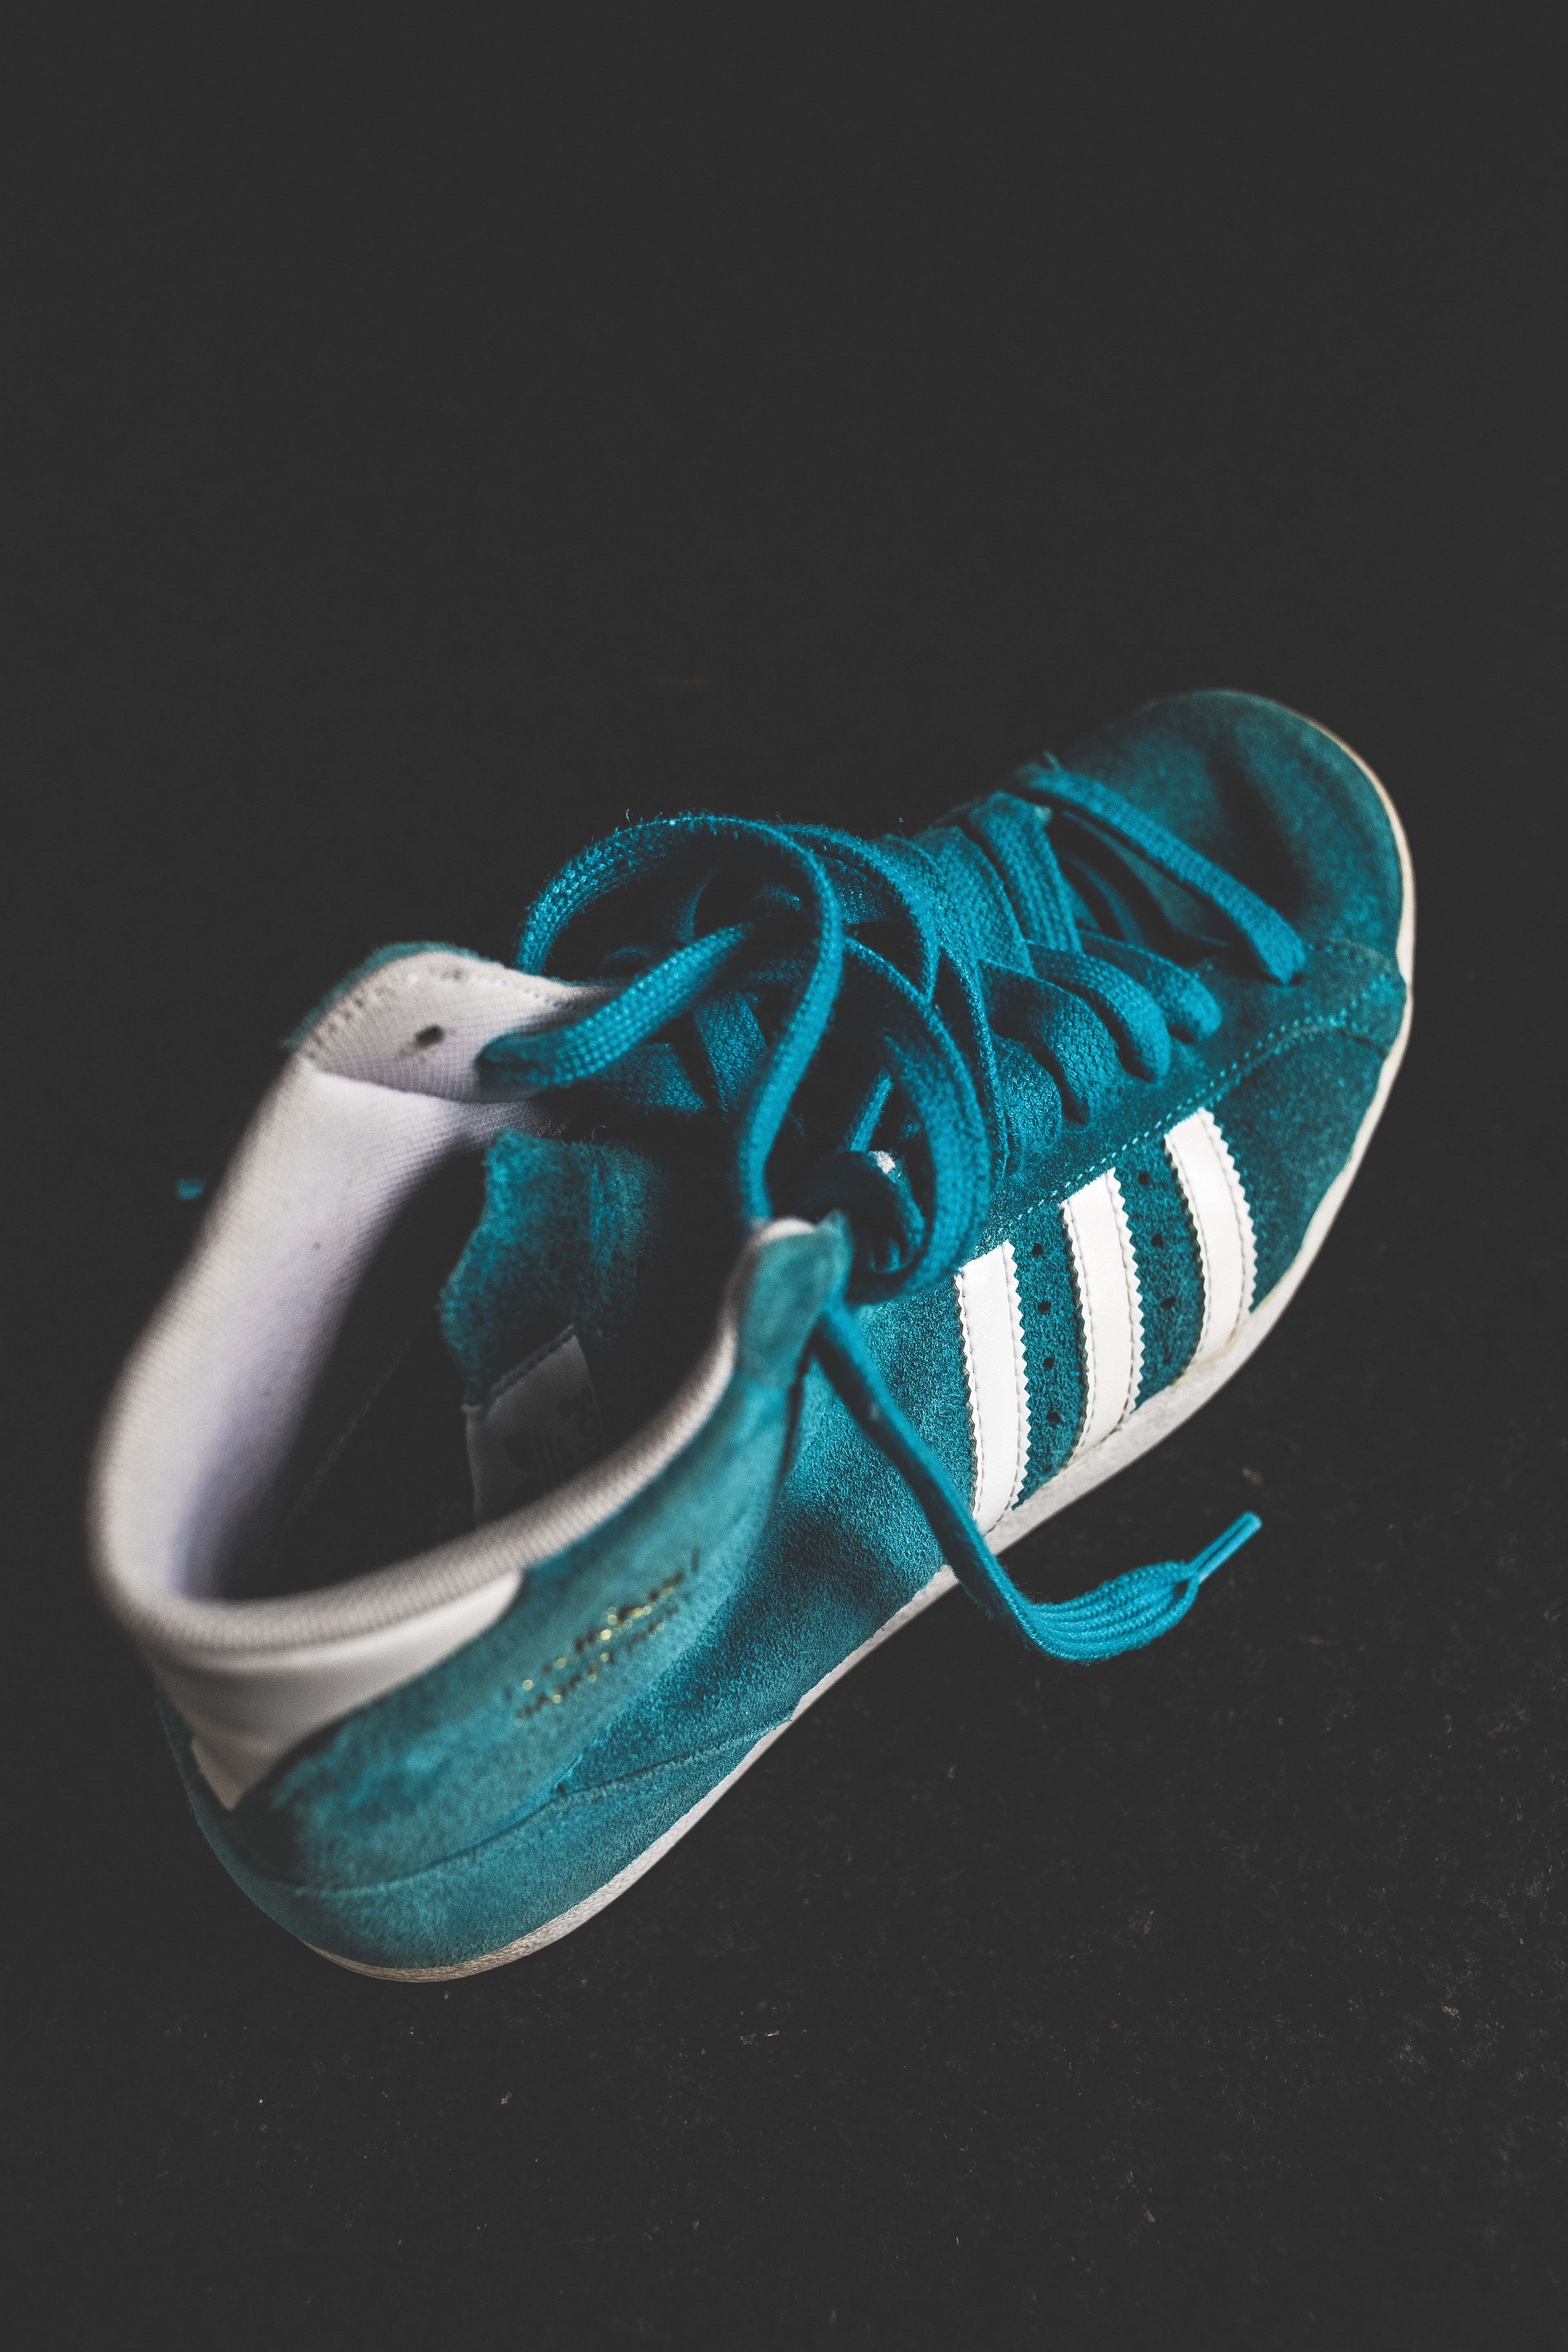 untied green and white Adidas high-top shoe